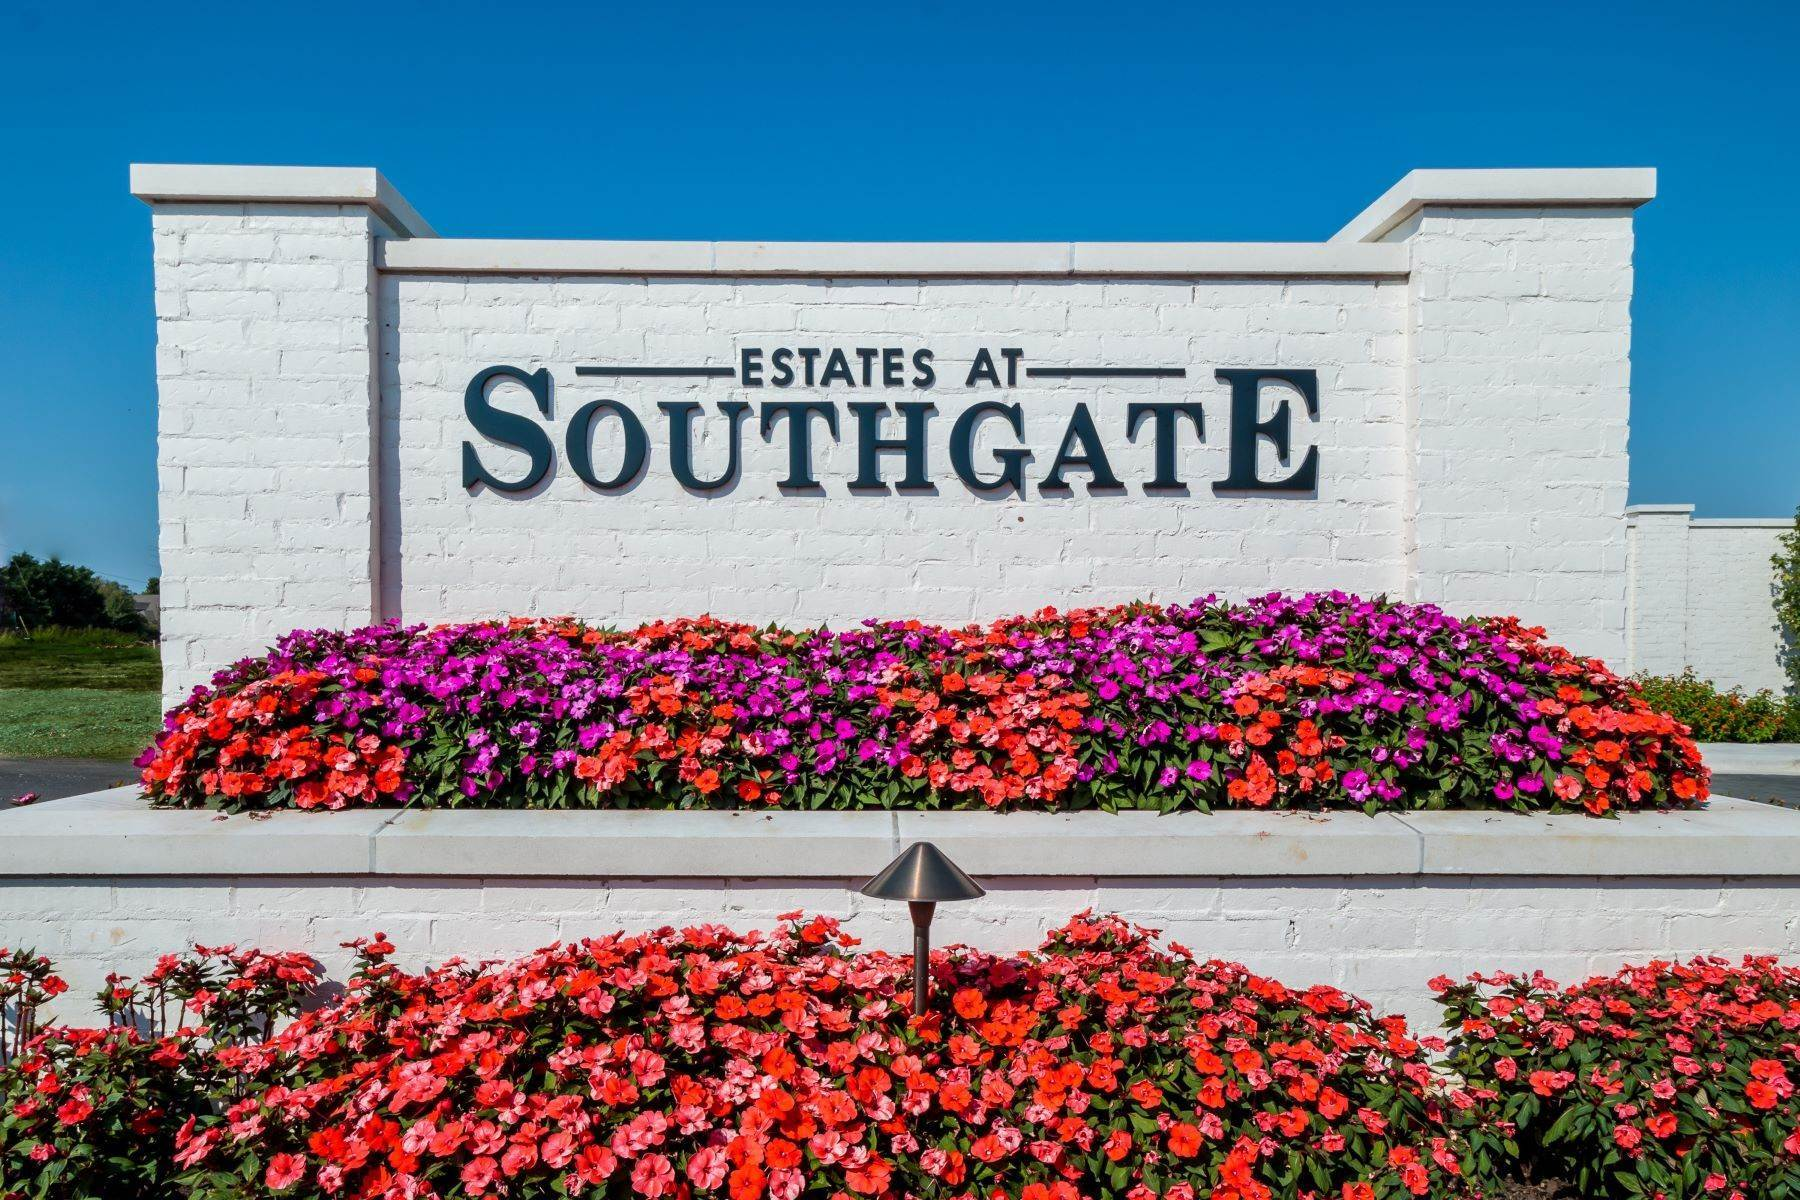 Land for Sale at Lot 3 Estates at Southgate 4804 Southgate Estates Circle Rogers, Arkansas 72758 United States